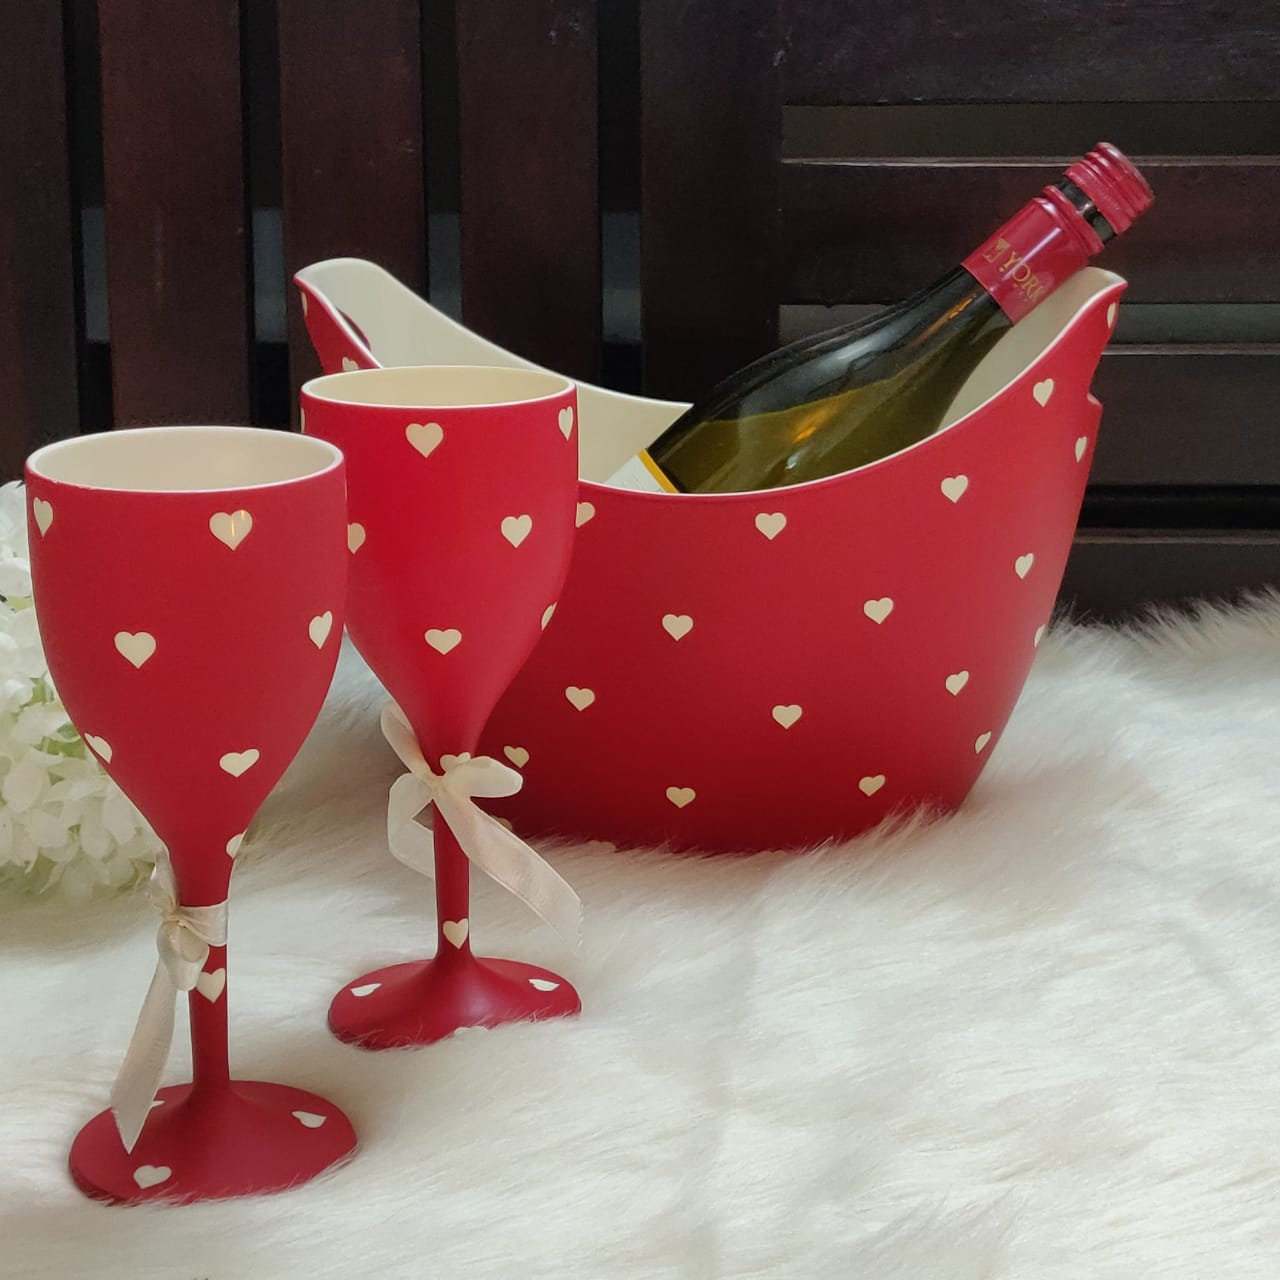 Non breakable red wine glass gift set (Set of 2 - 290 ml each) with chilling bucket - Valentines Day gifts ,Wedding & Anniversary gifts